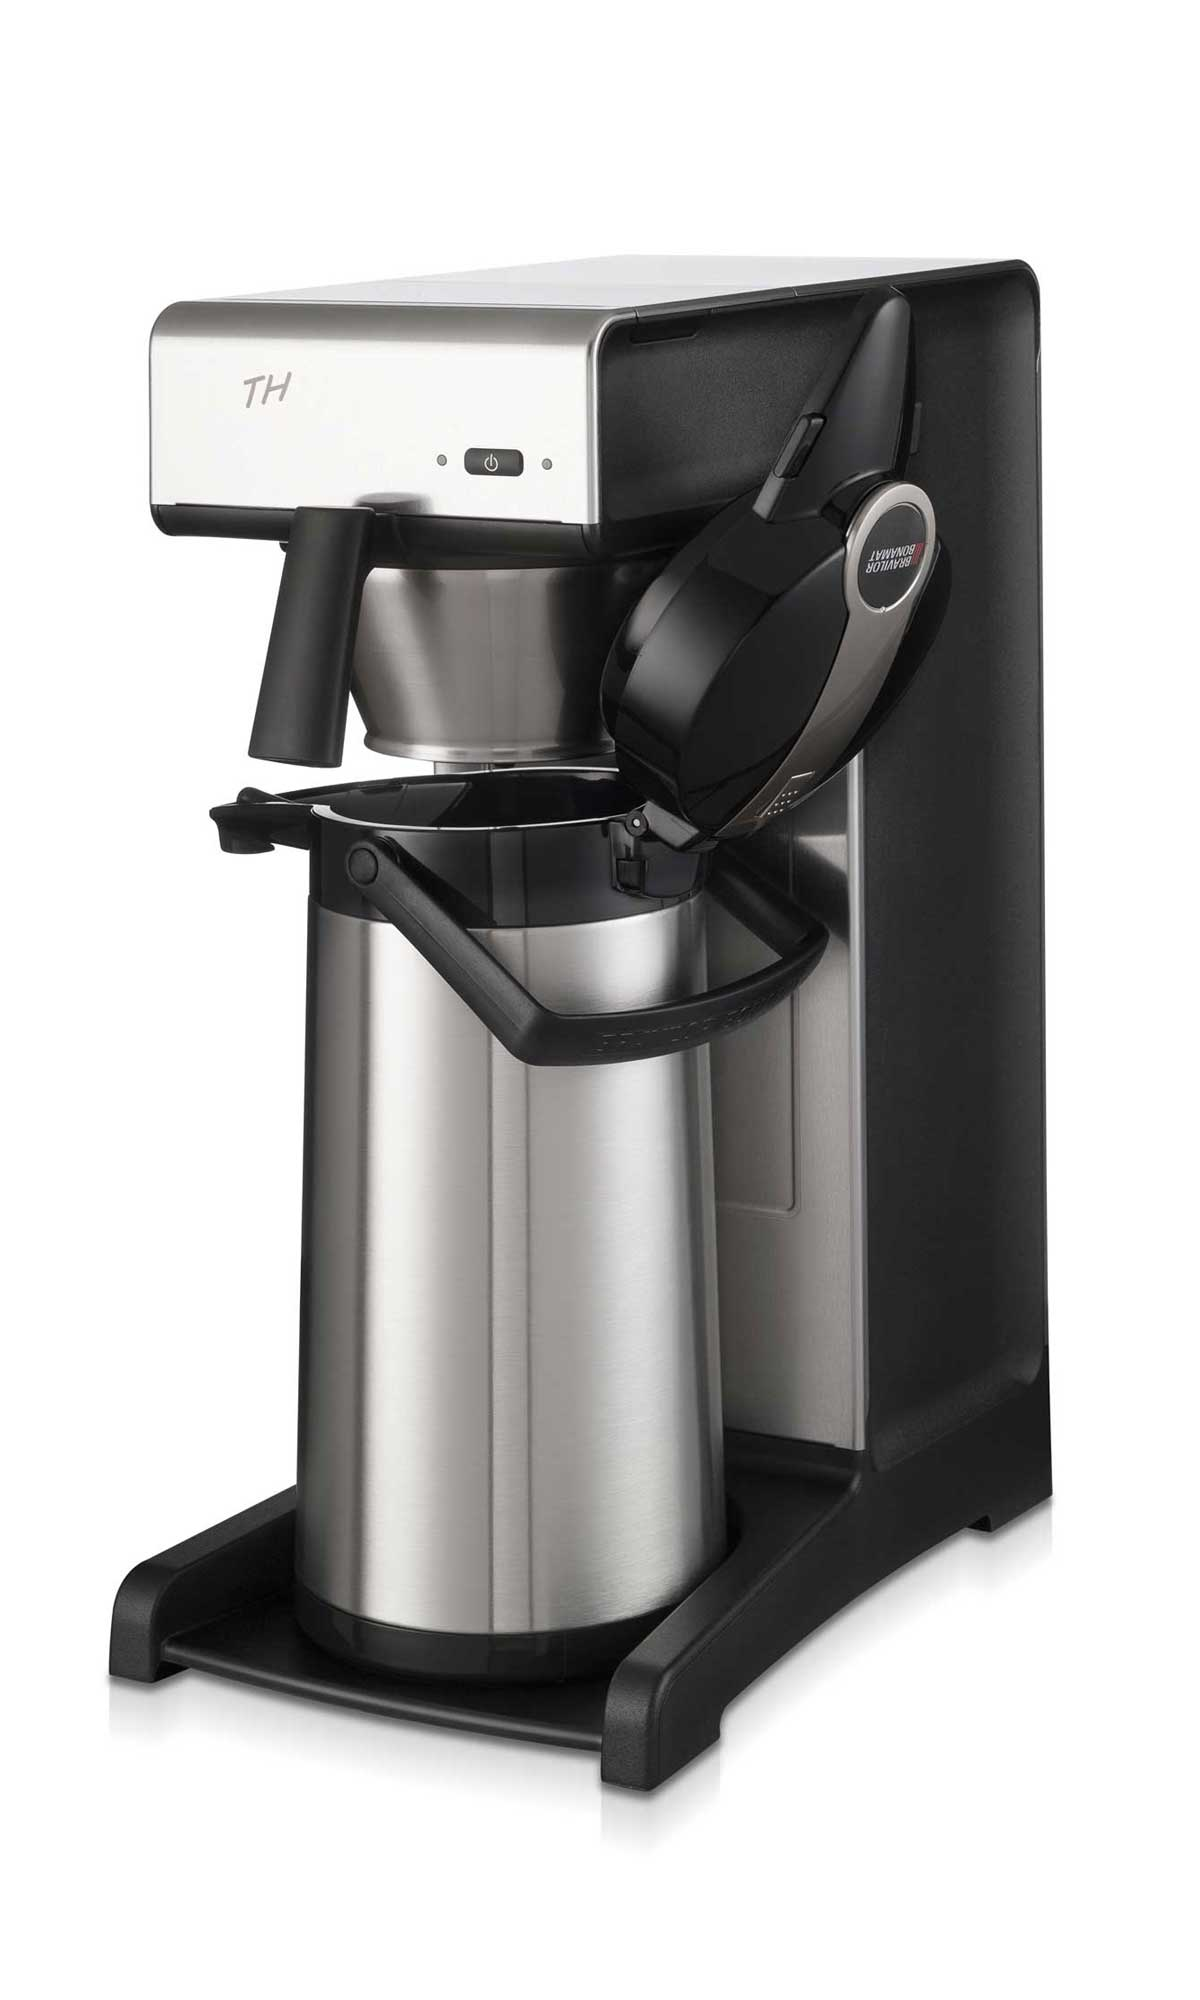 Bonamat TH 10 Kaffeemaschine